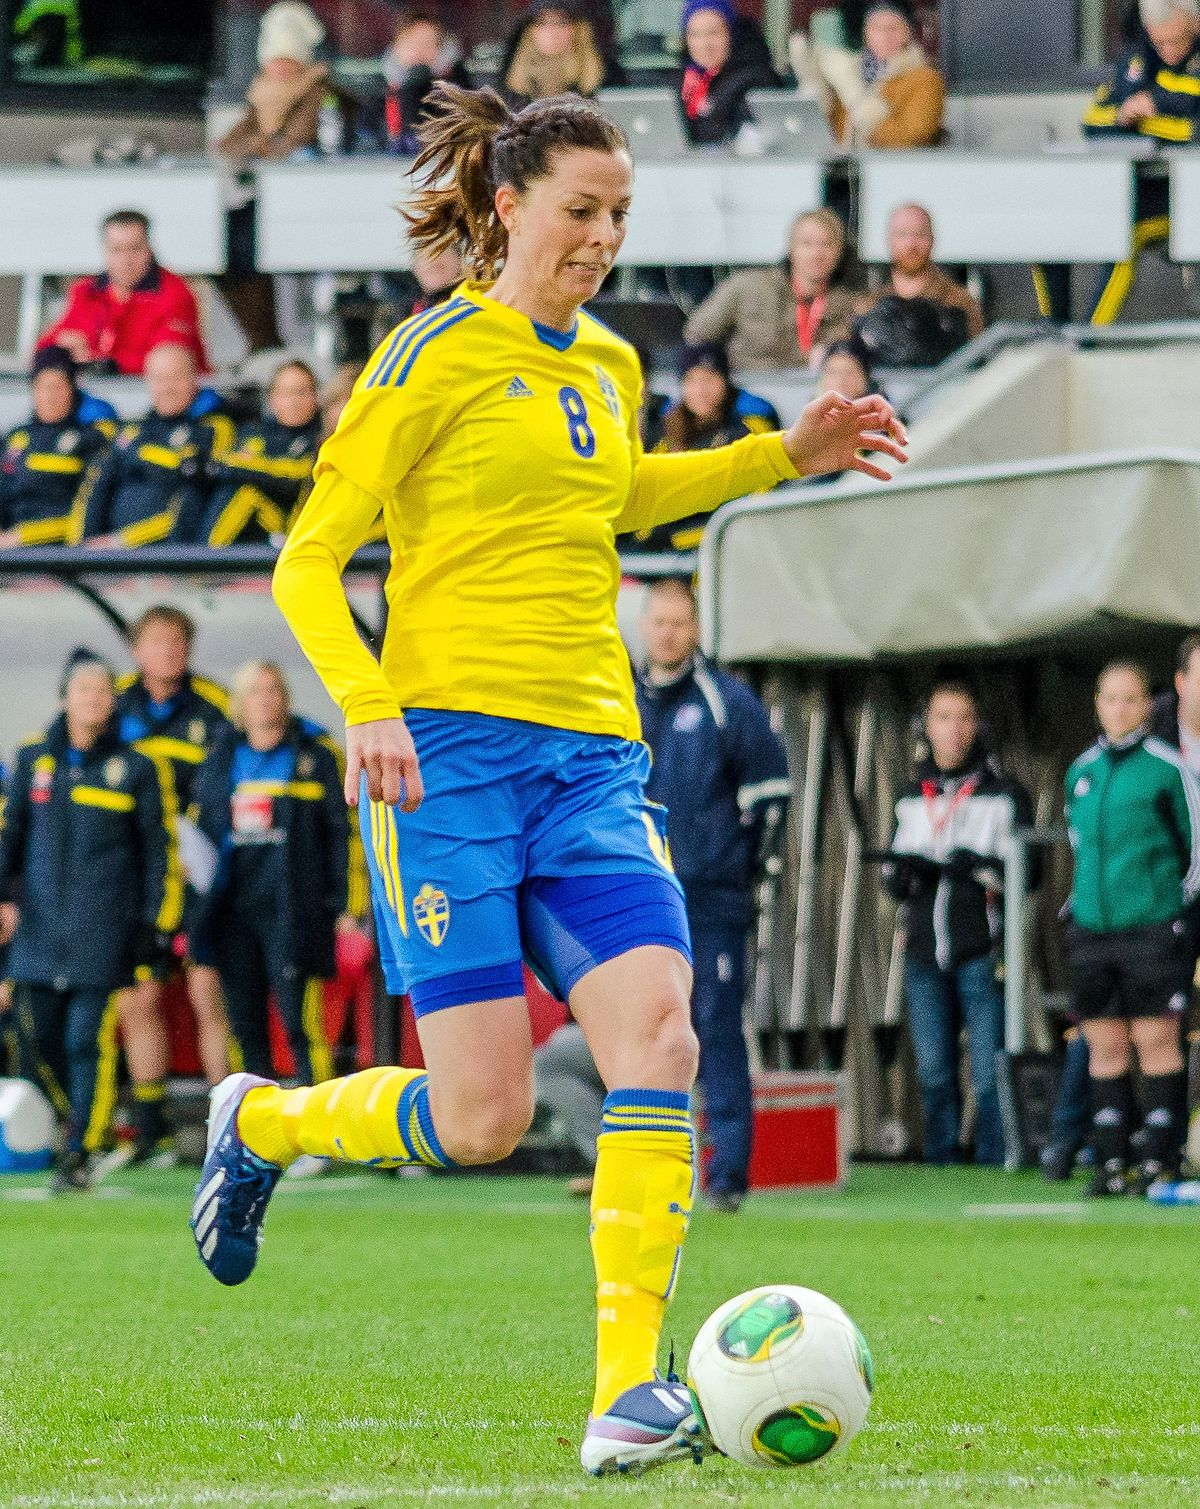 Remarkable, lotta schelin and lesb amusing